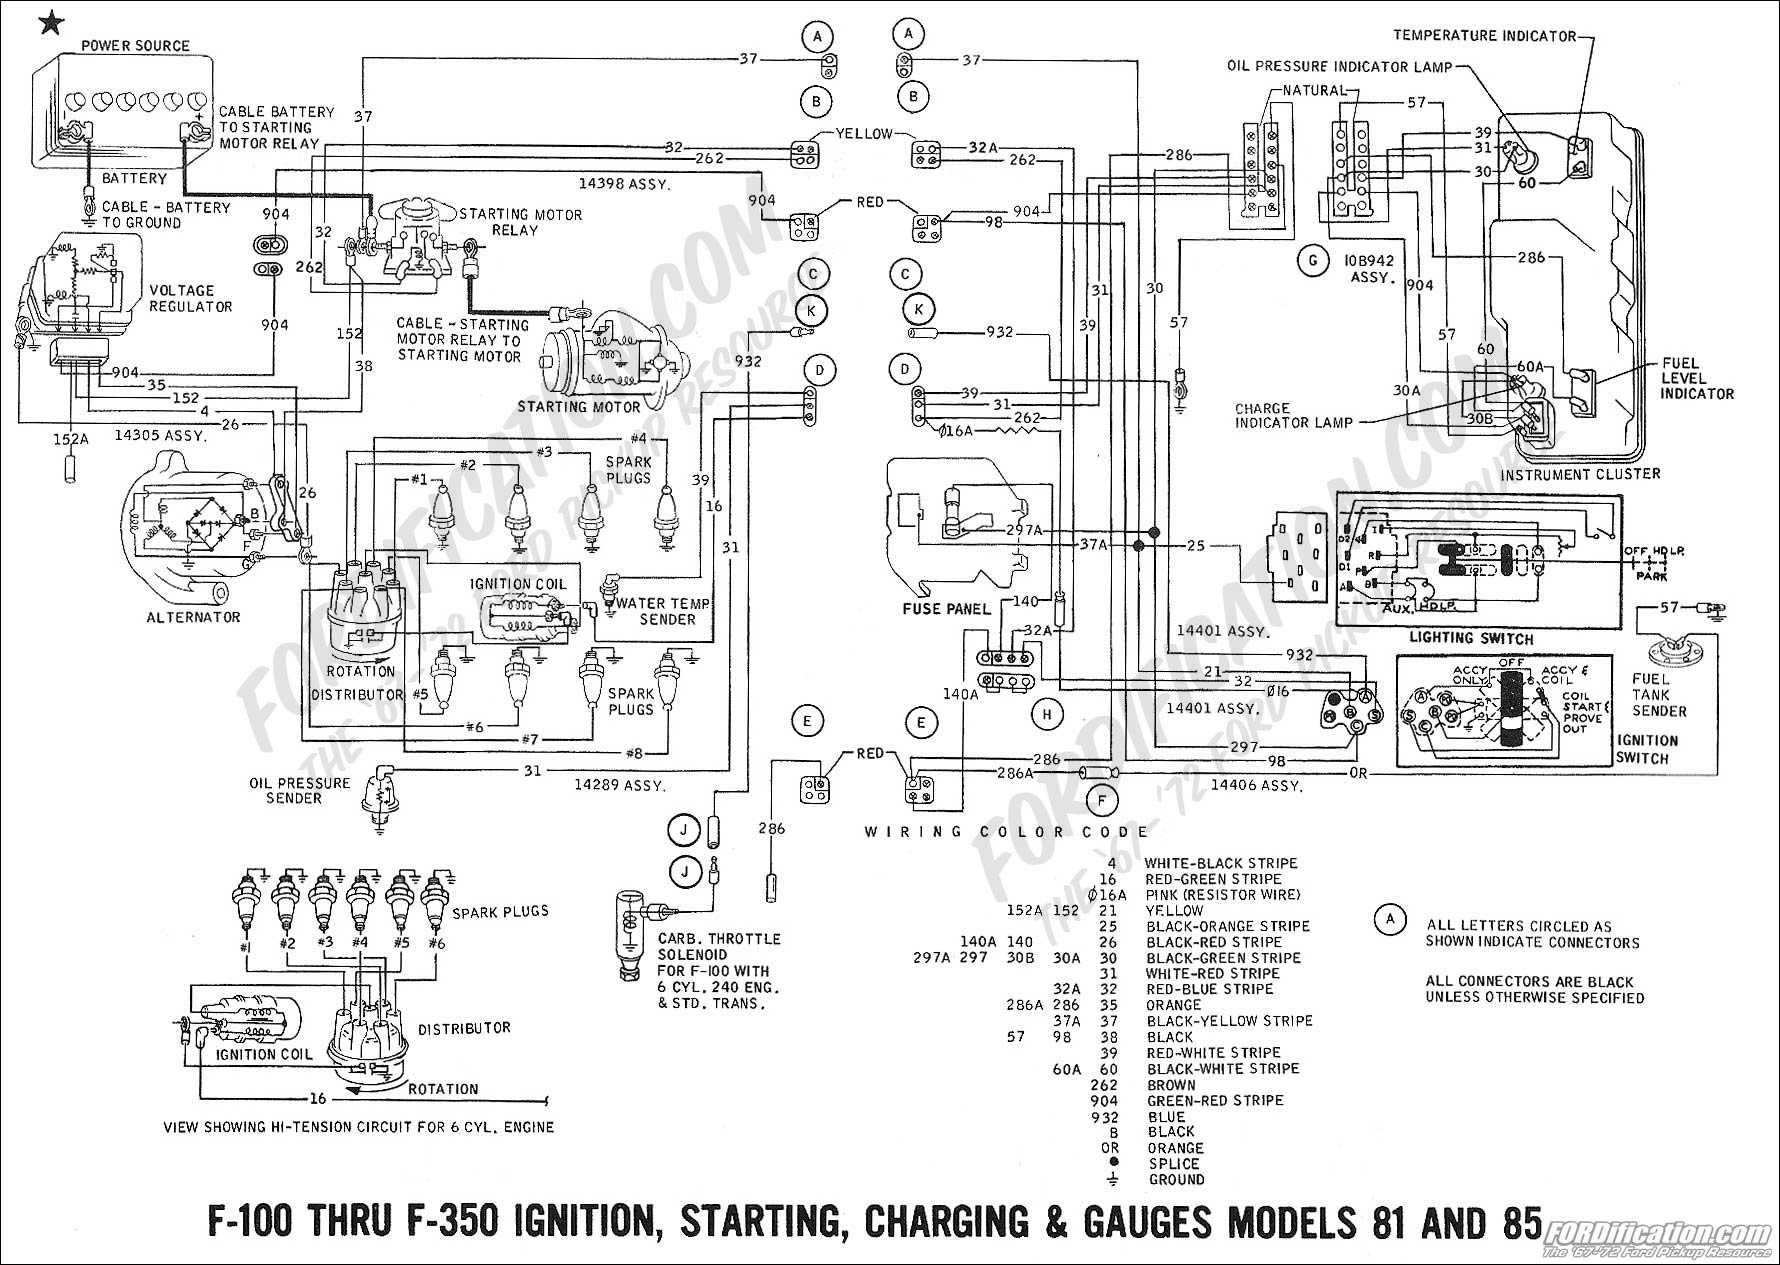 Motor Starter Wiring Diagram 1970 Torino Libraries 1968 Diagrams Simple